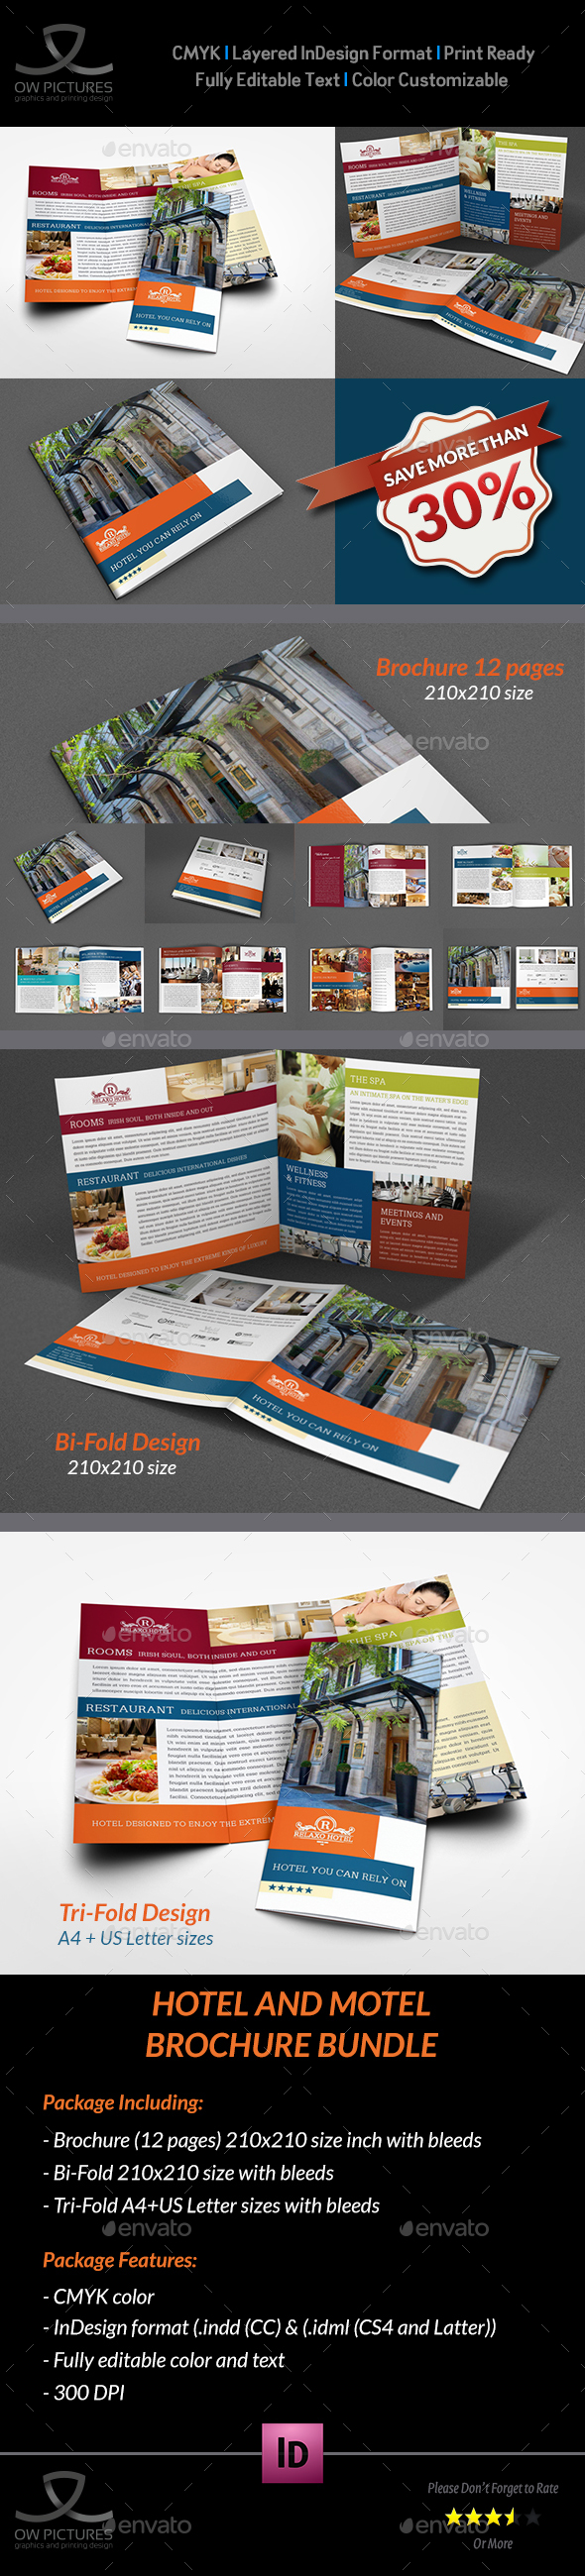 Hotel and Motel Brochure Bundle - Brochures Print Templates